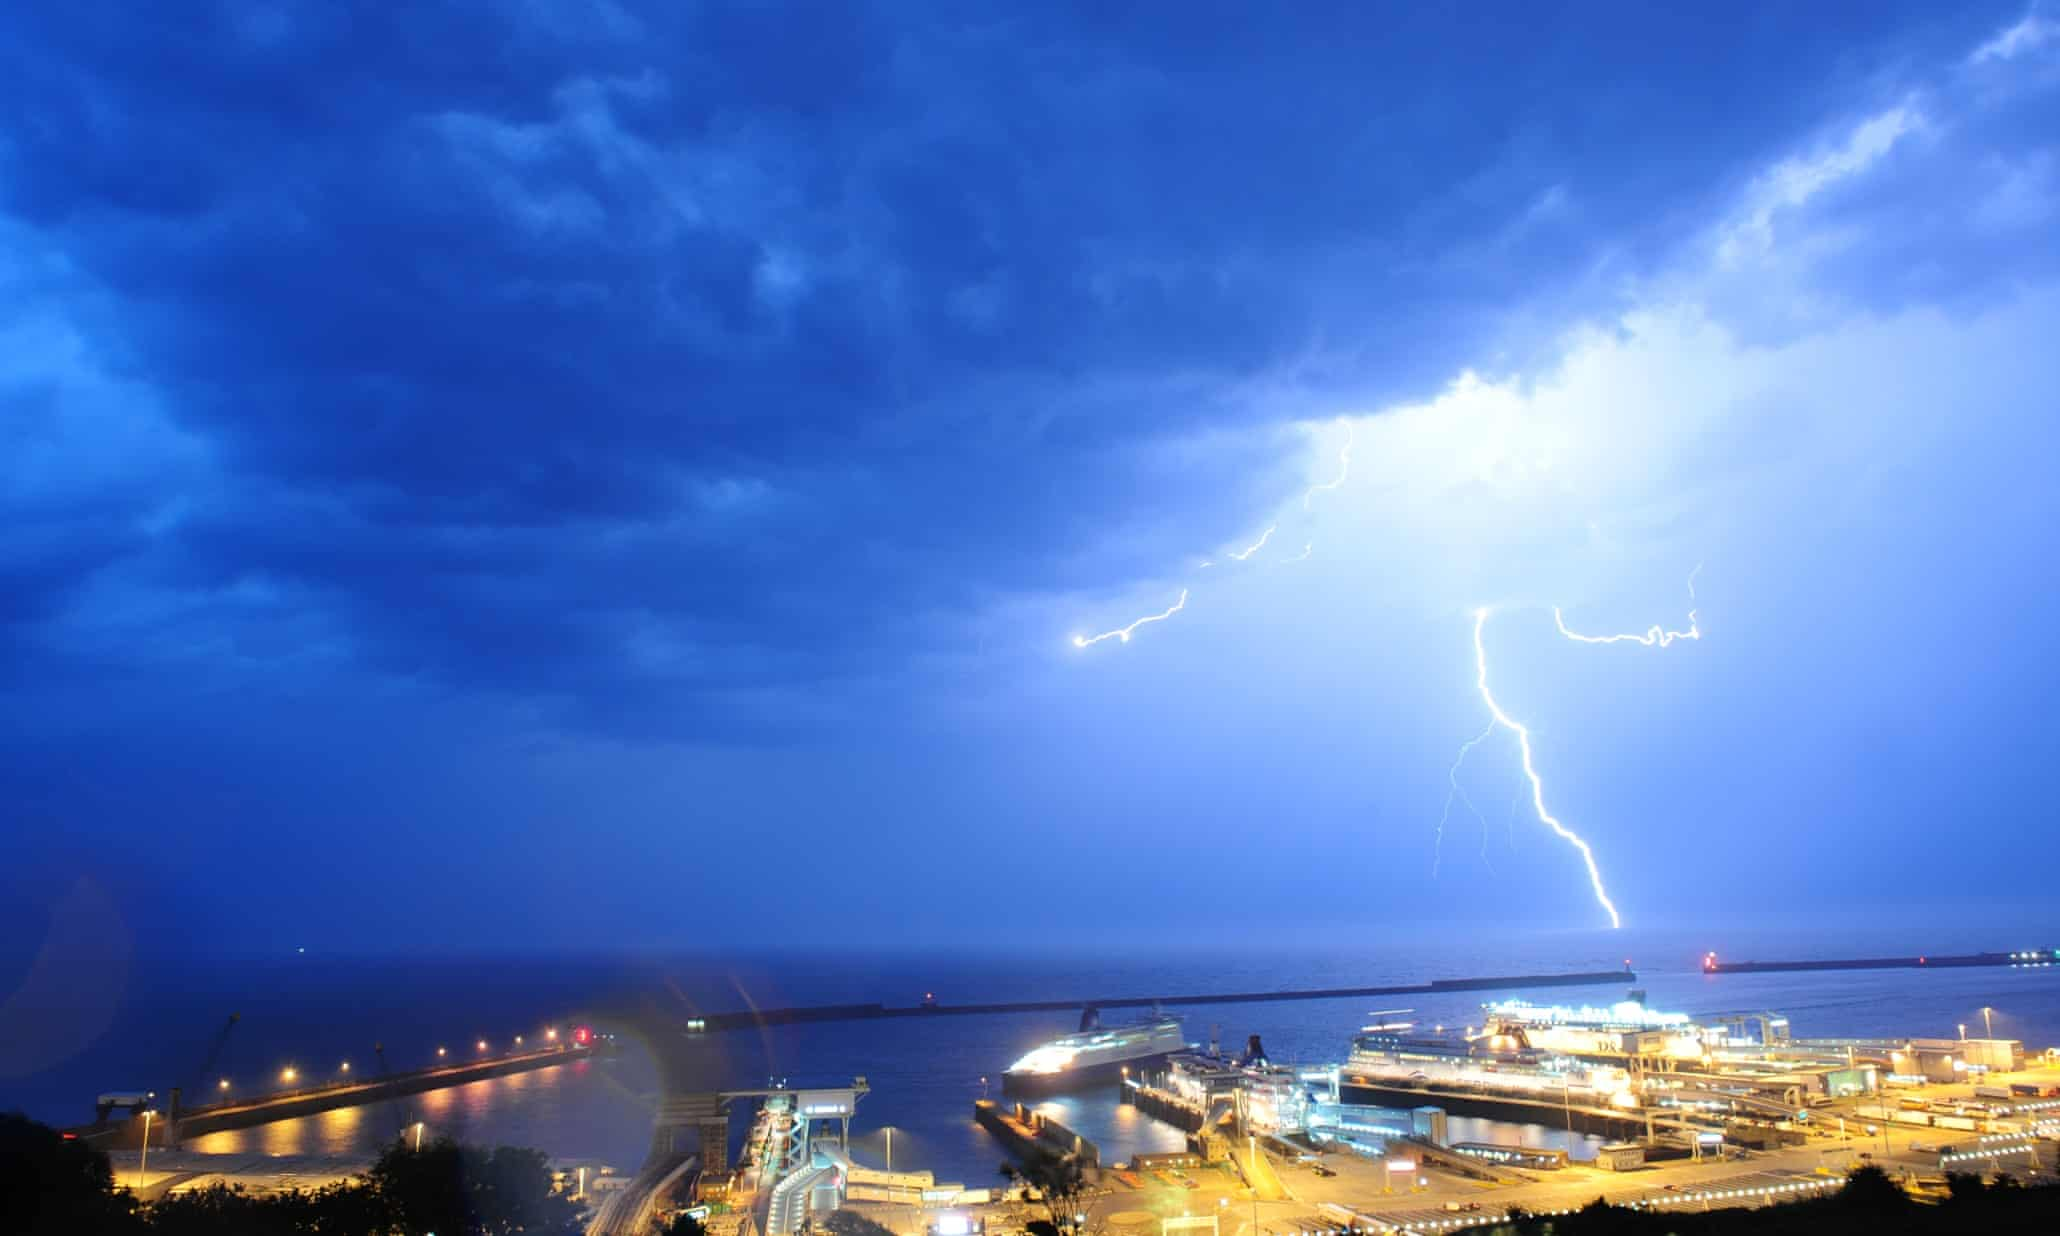 Lightning strikes the UK - in pictures